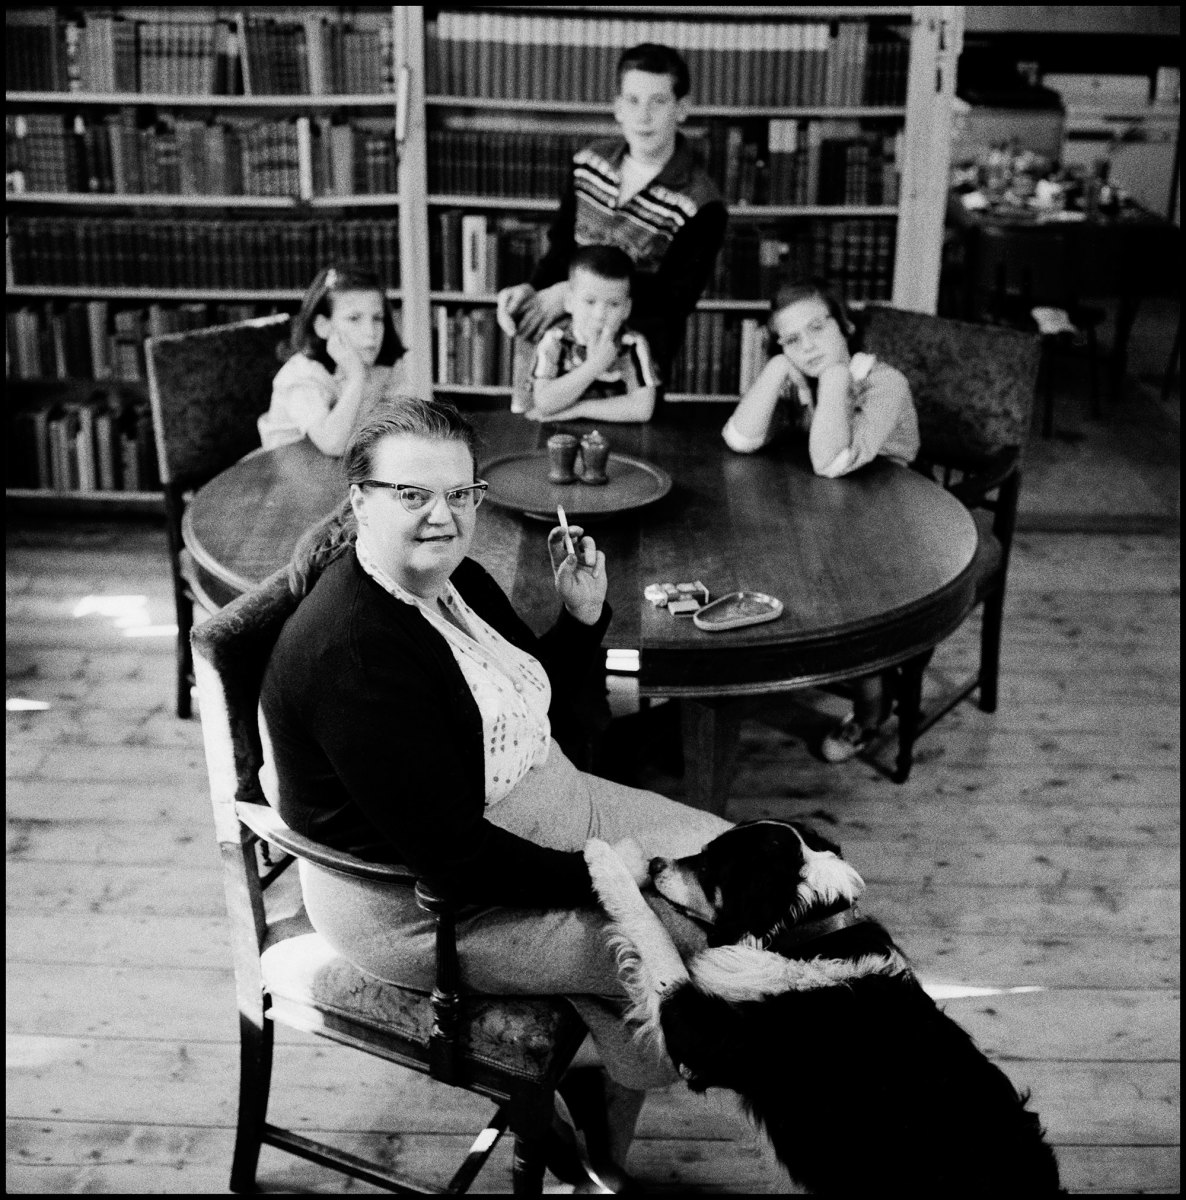 the lottery shirley jackson review The lottery: the lottery, short story by shirley jackson, published in the new yorker in june 1948 and included the following year in her collection the lottery or, the adventures of james harris you can make it easier for us to review and.